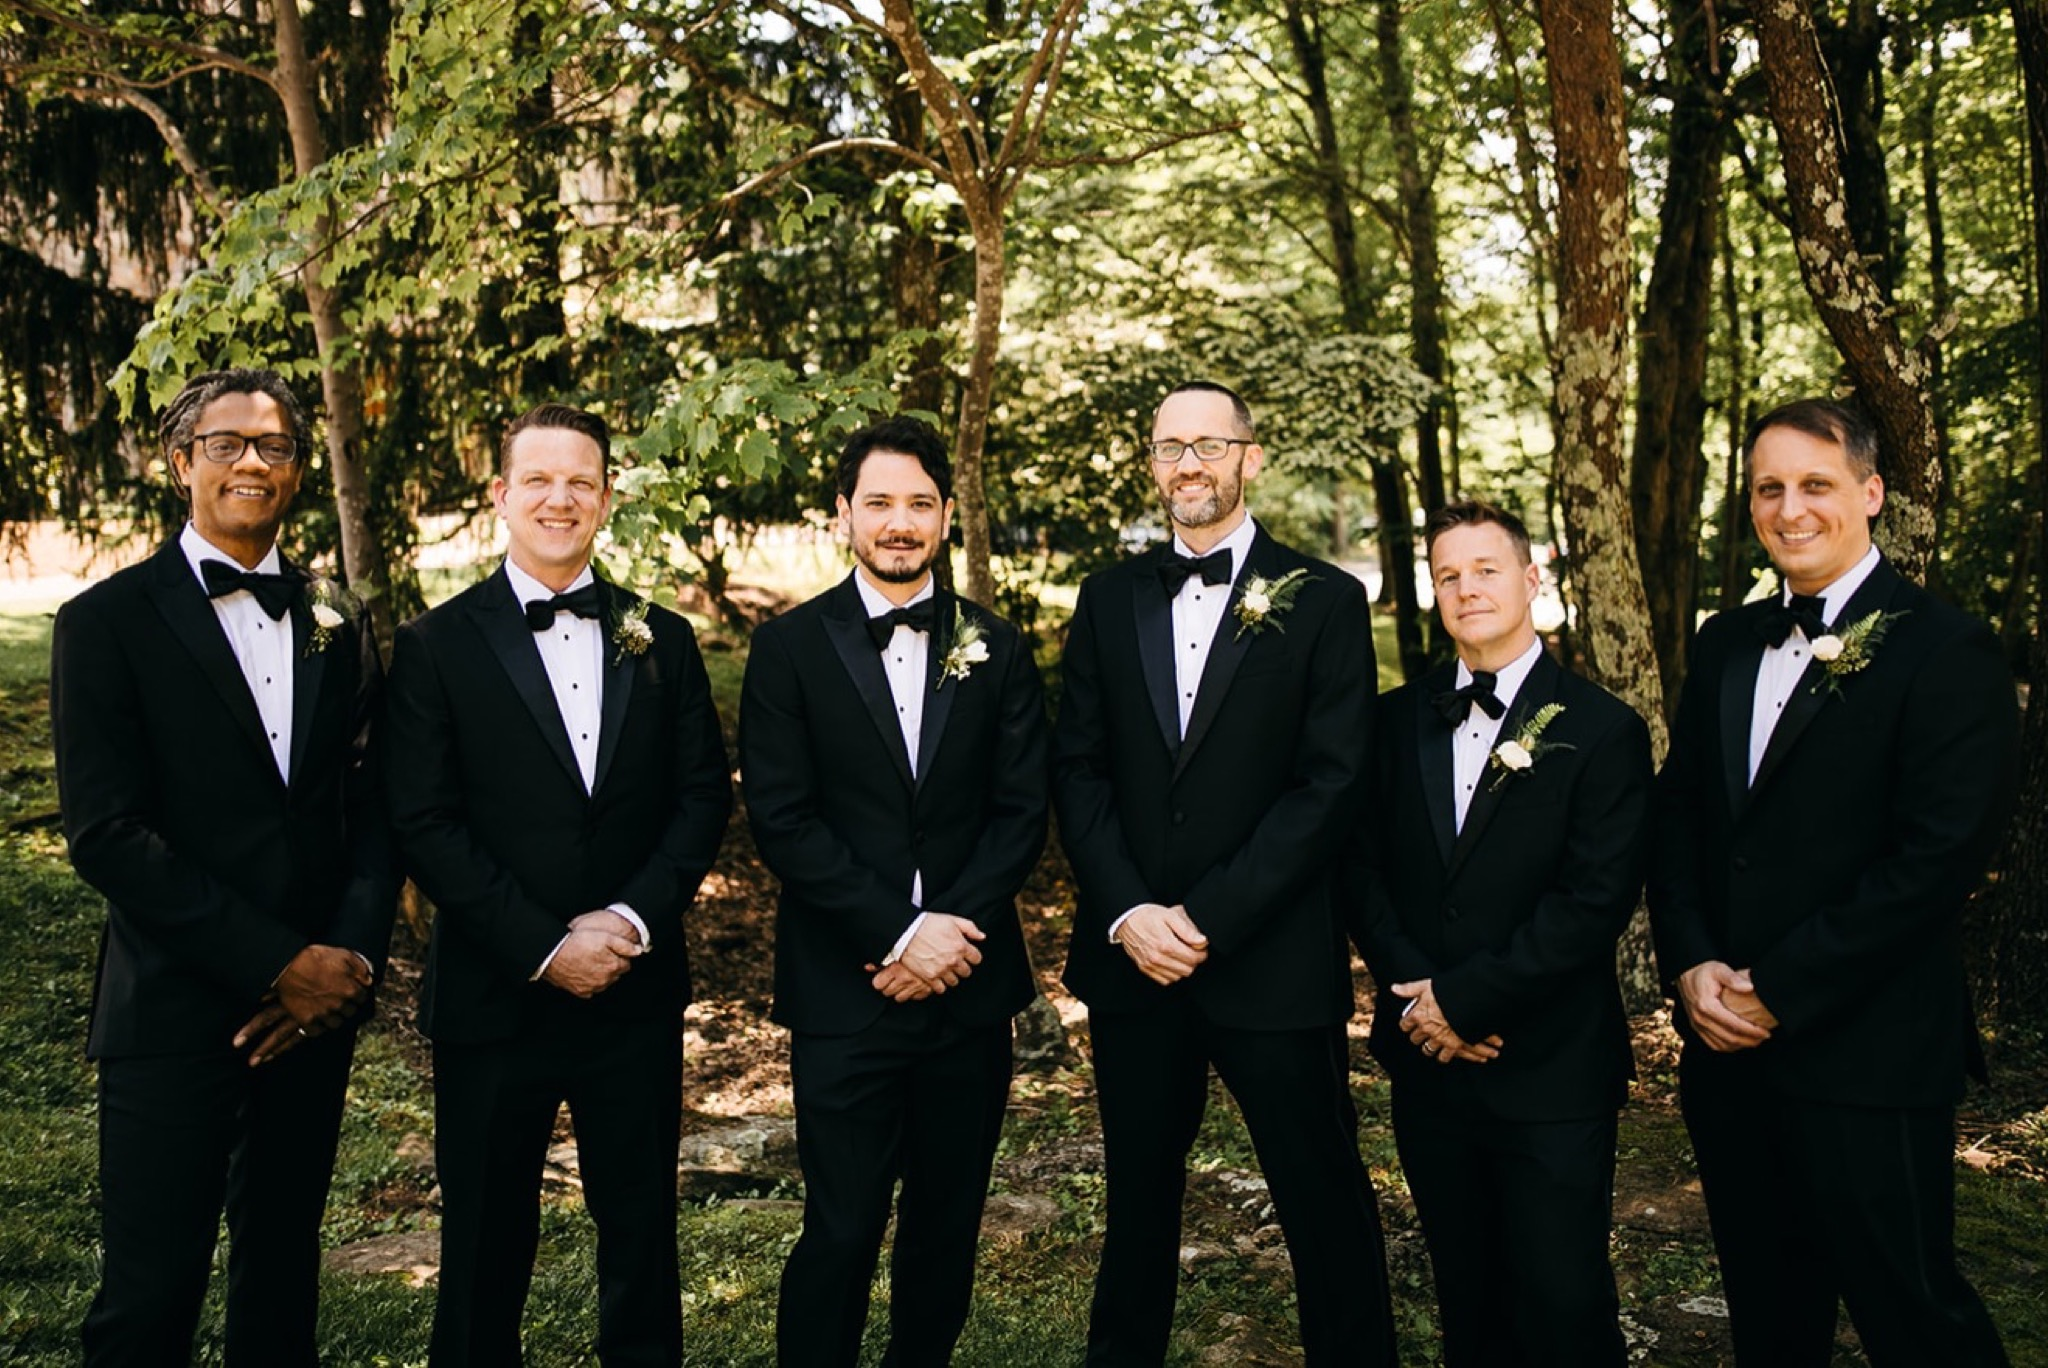 groom and groomsmen wear classic black tuxedos and pose for bridal party shots